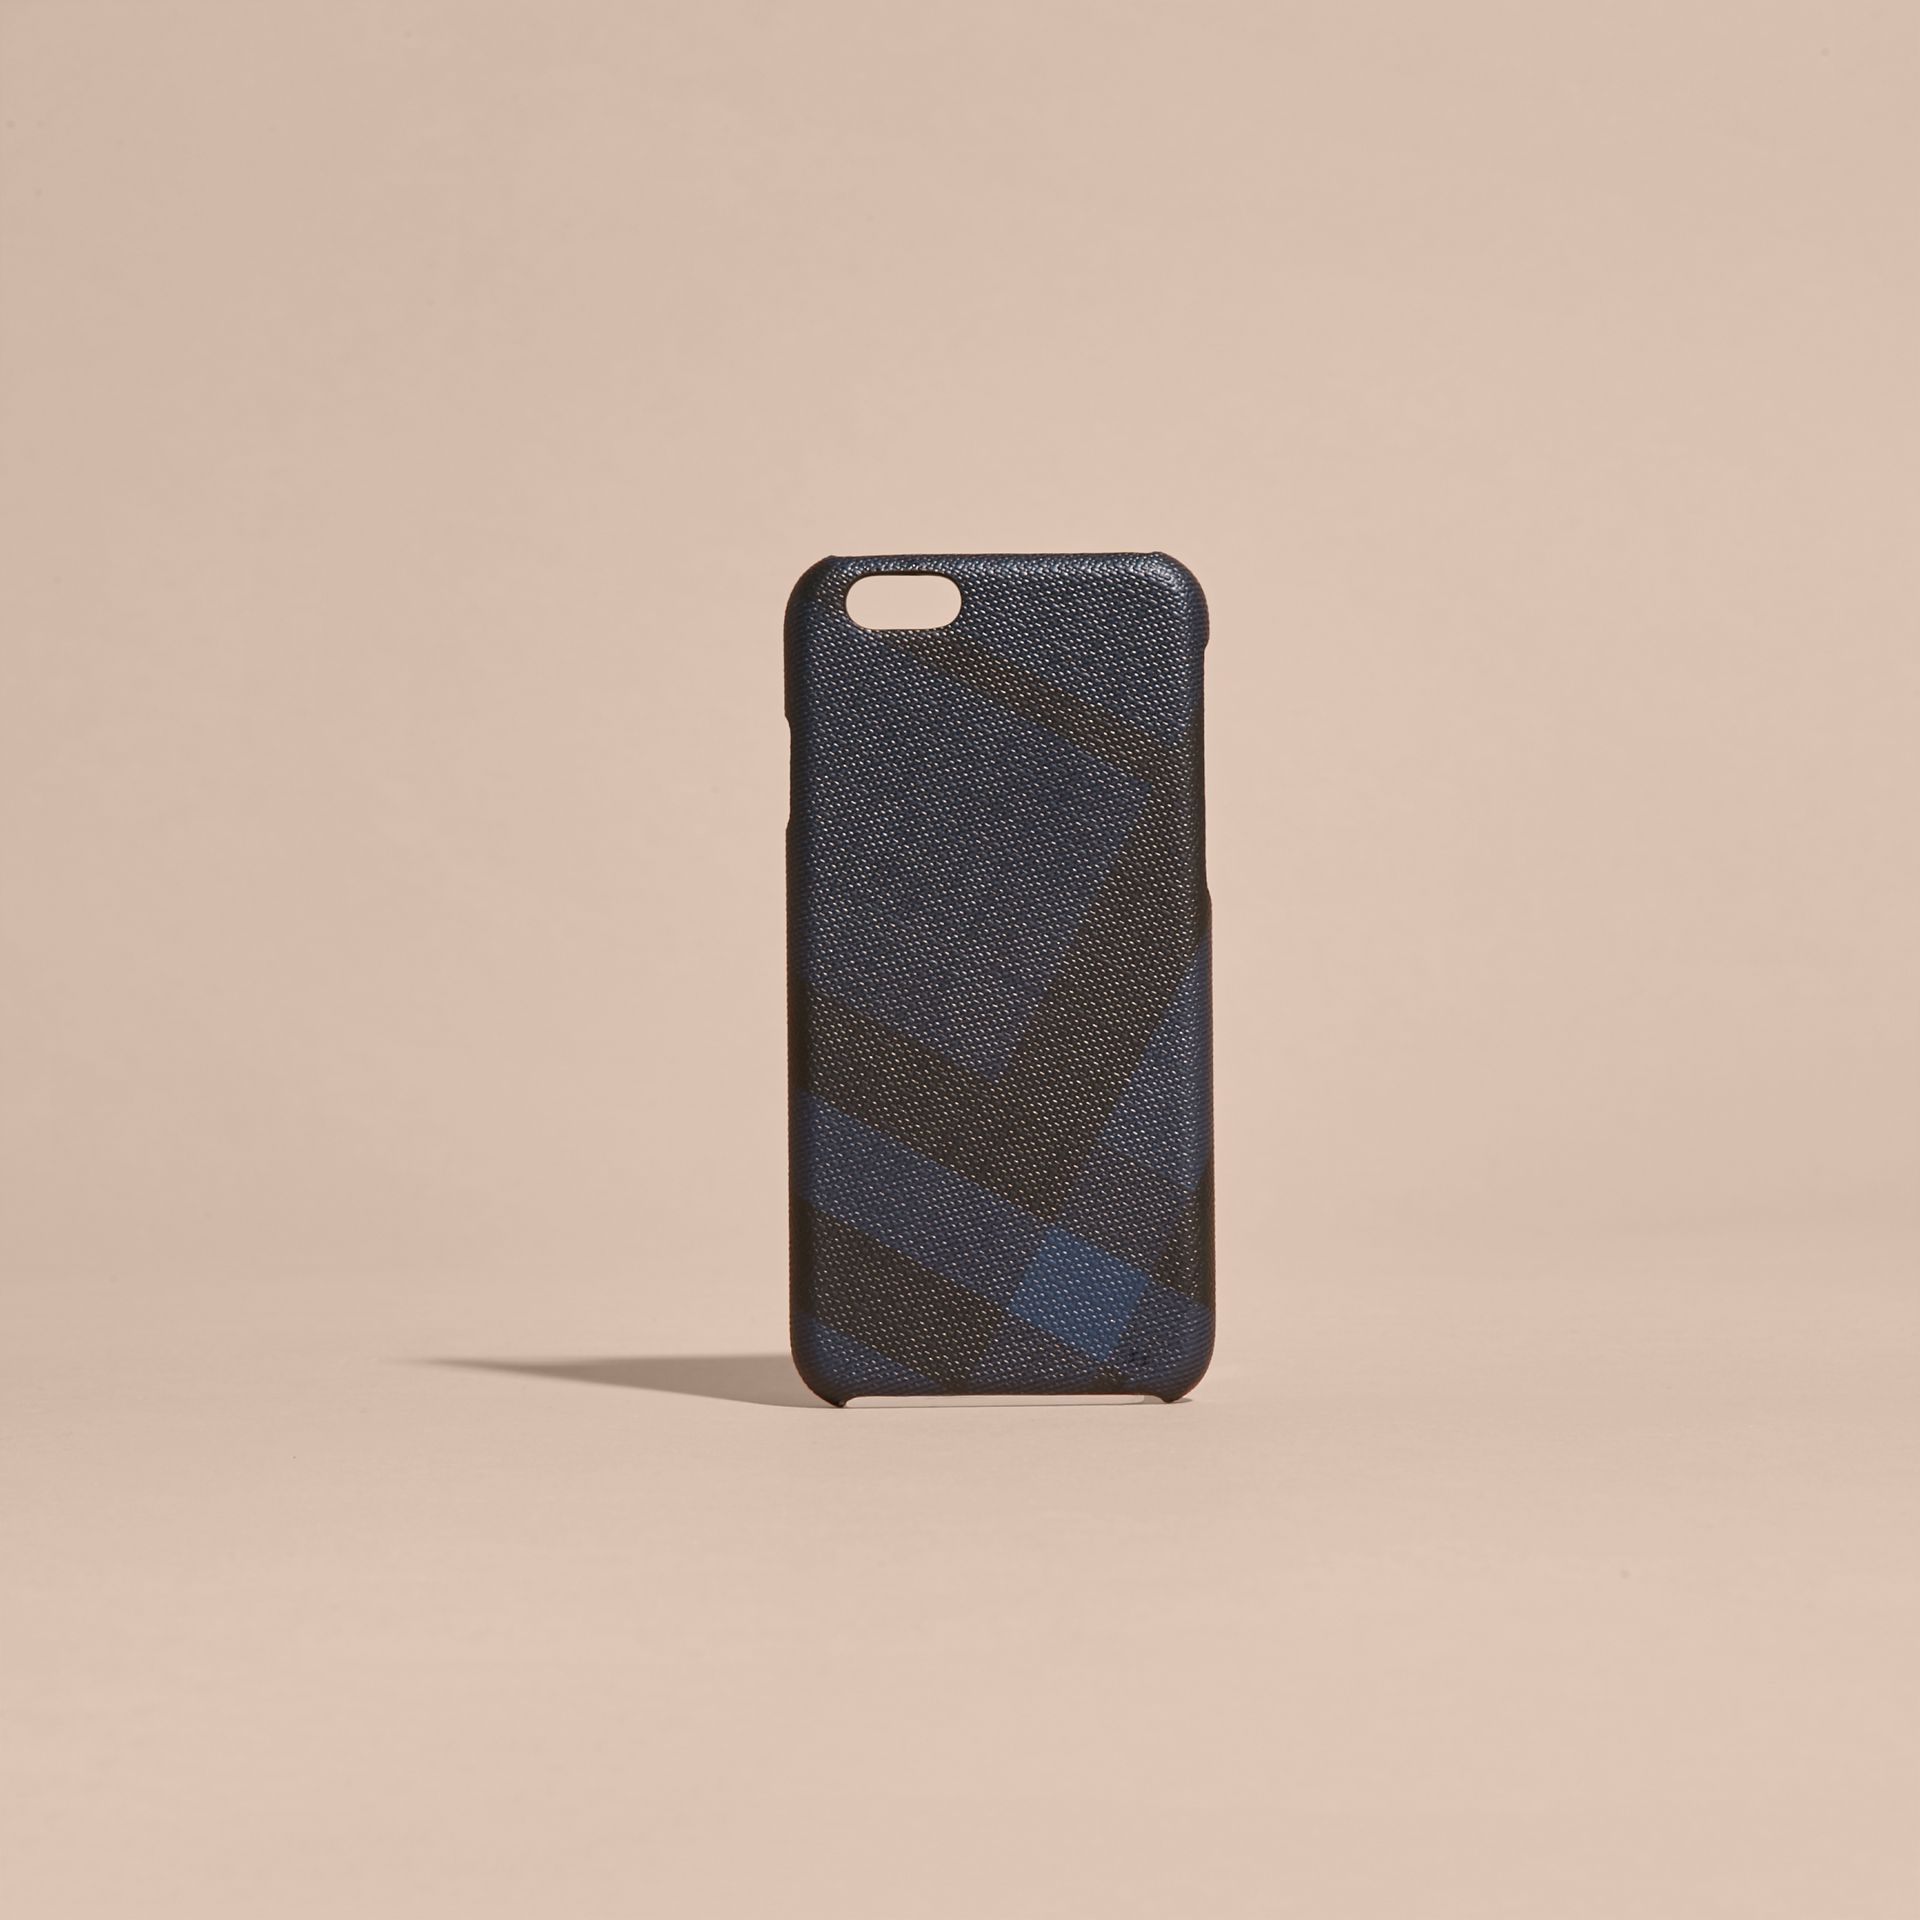 iPhone 7-Etui in London Check | Burberry - Galerie-Bild 5